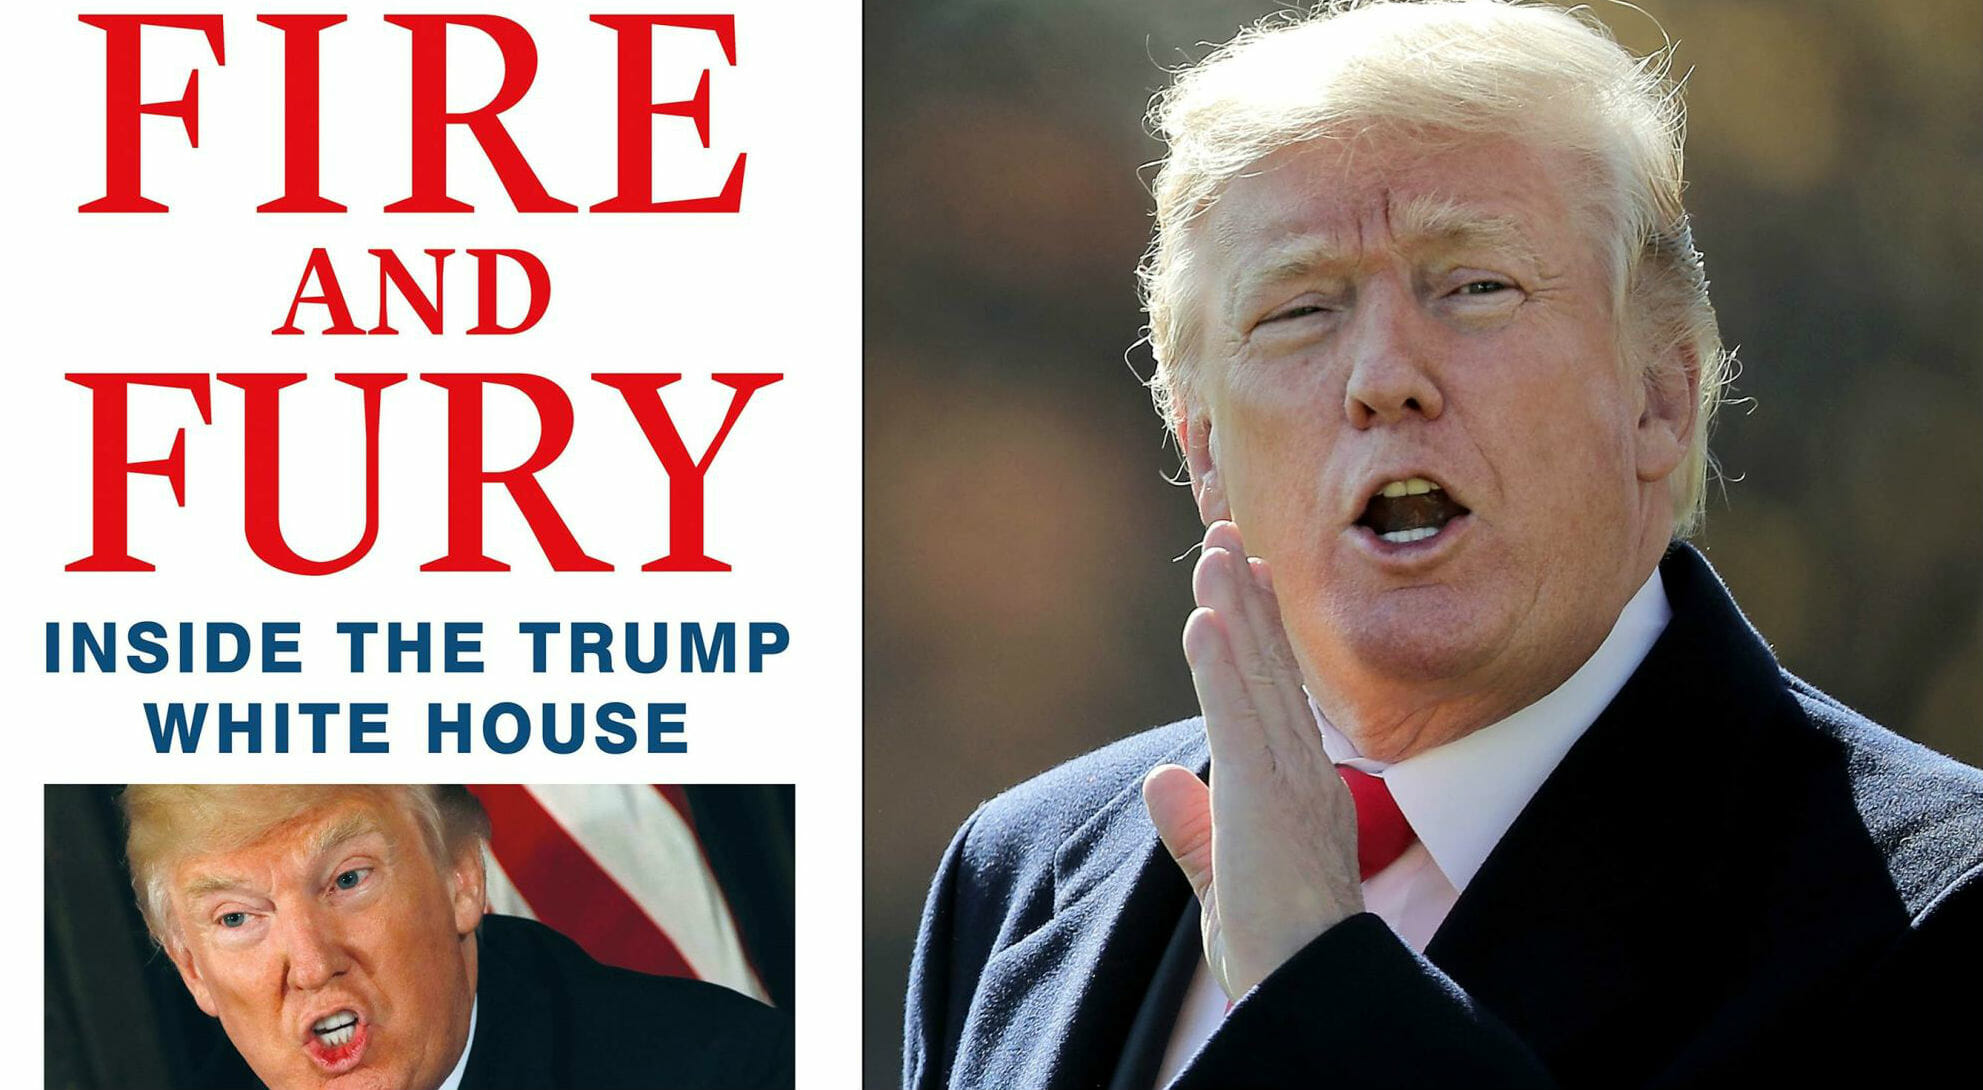 FIRE AND FURY trump